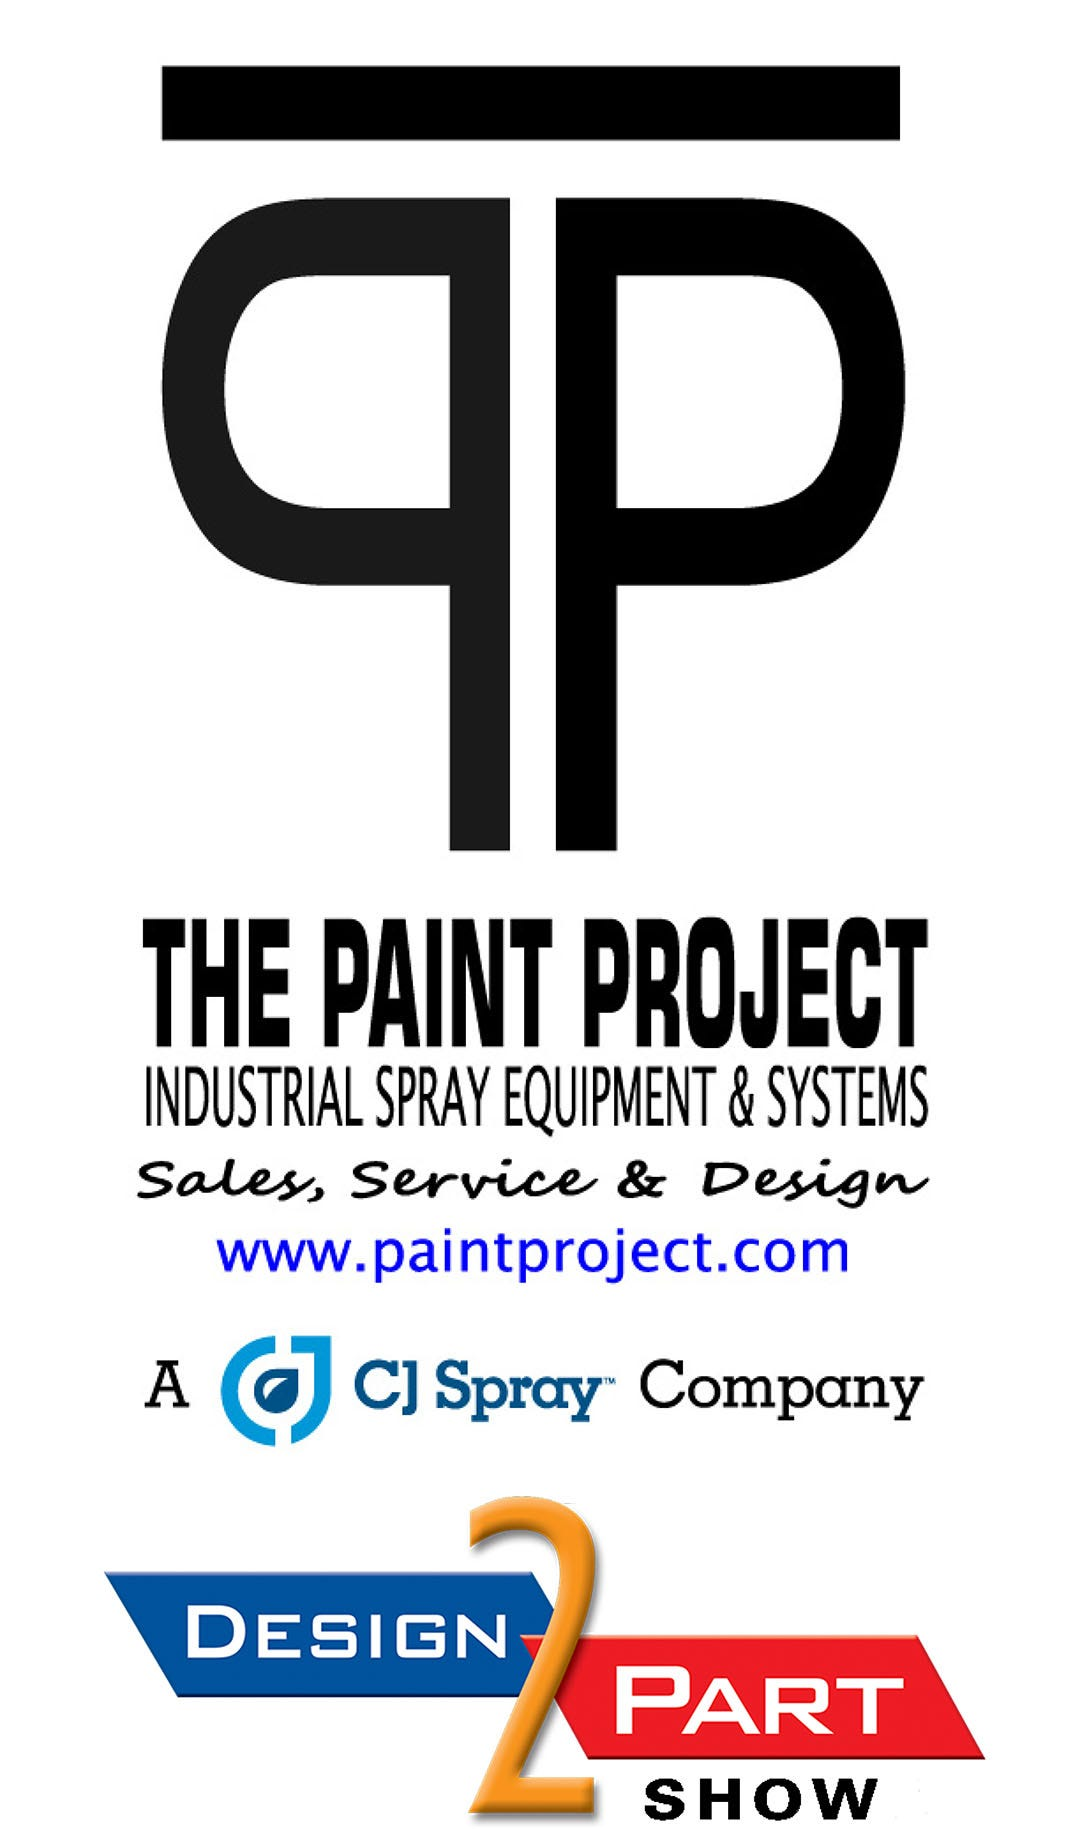 The Paint Project - Design 2 Part Trade Show